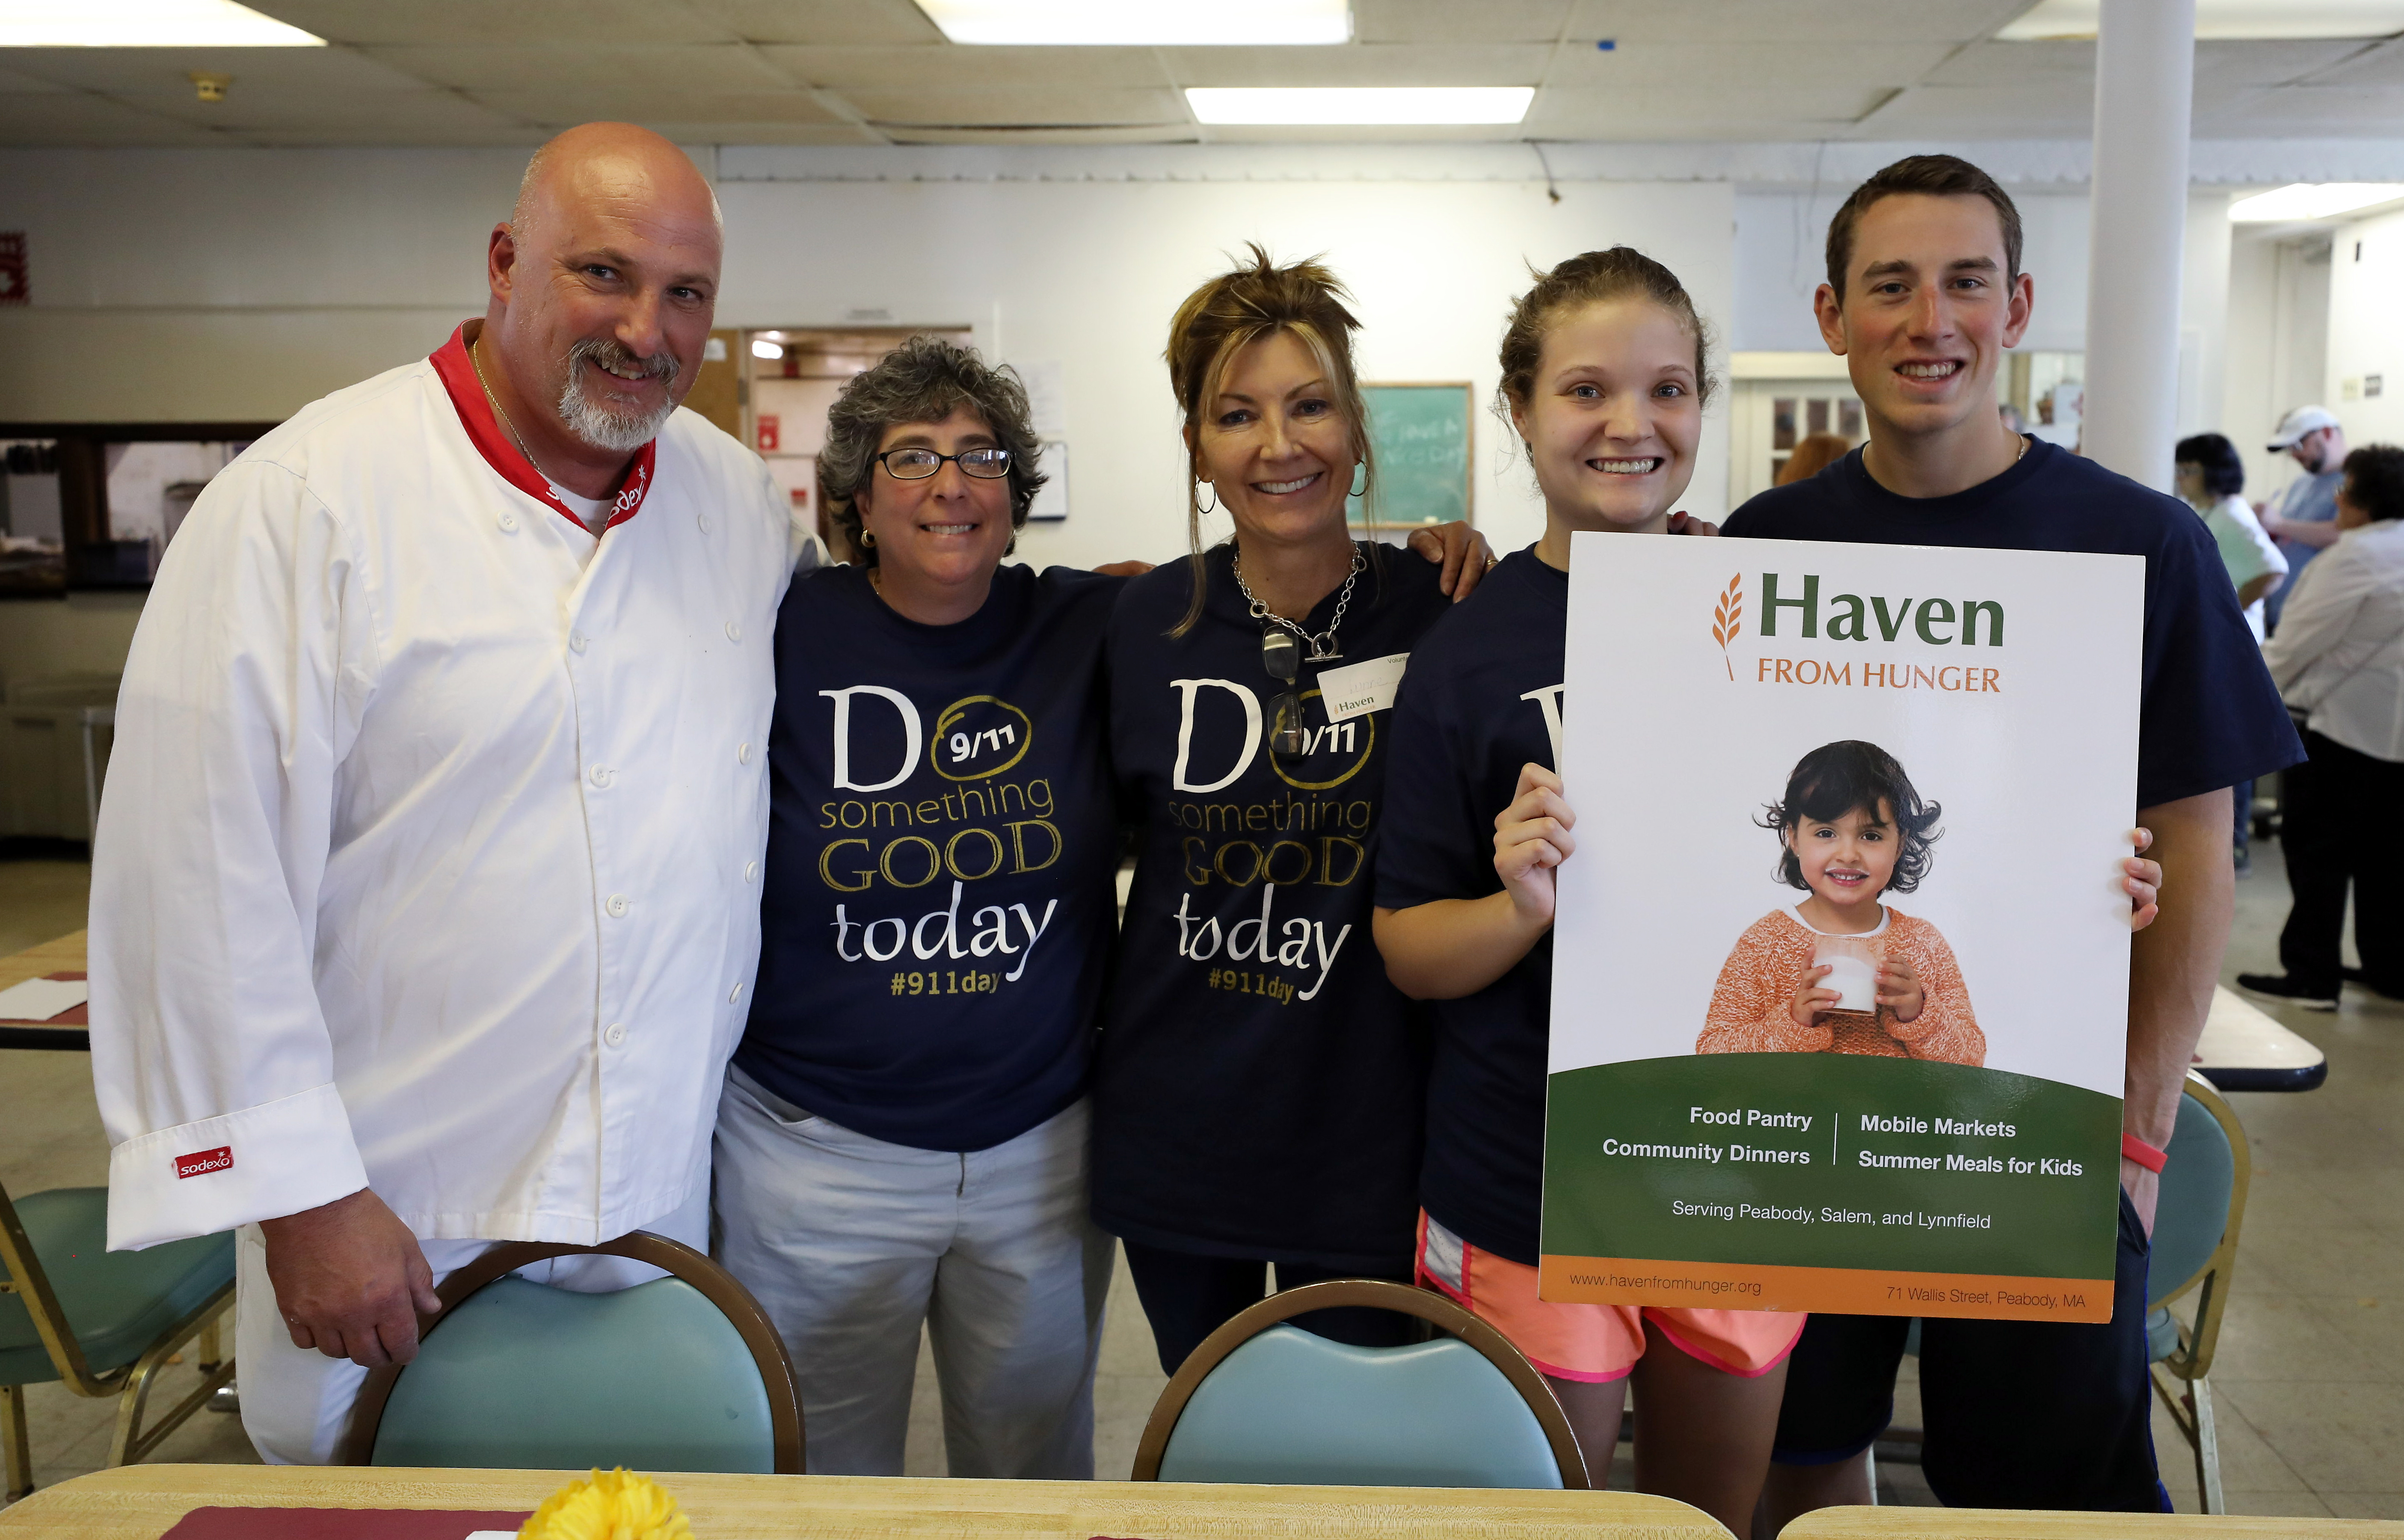 a chef and four others posing for a photo with a 'Haven from Hunger' sign